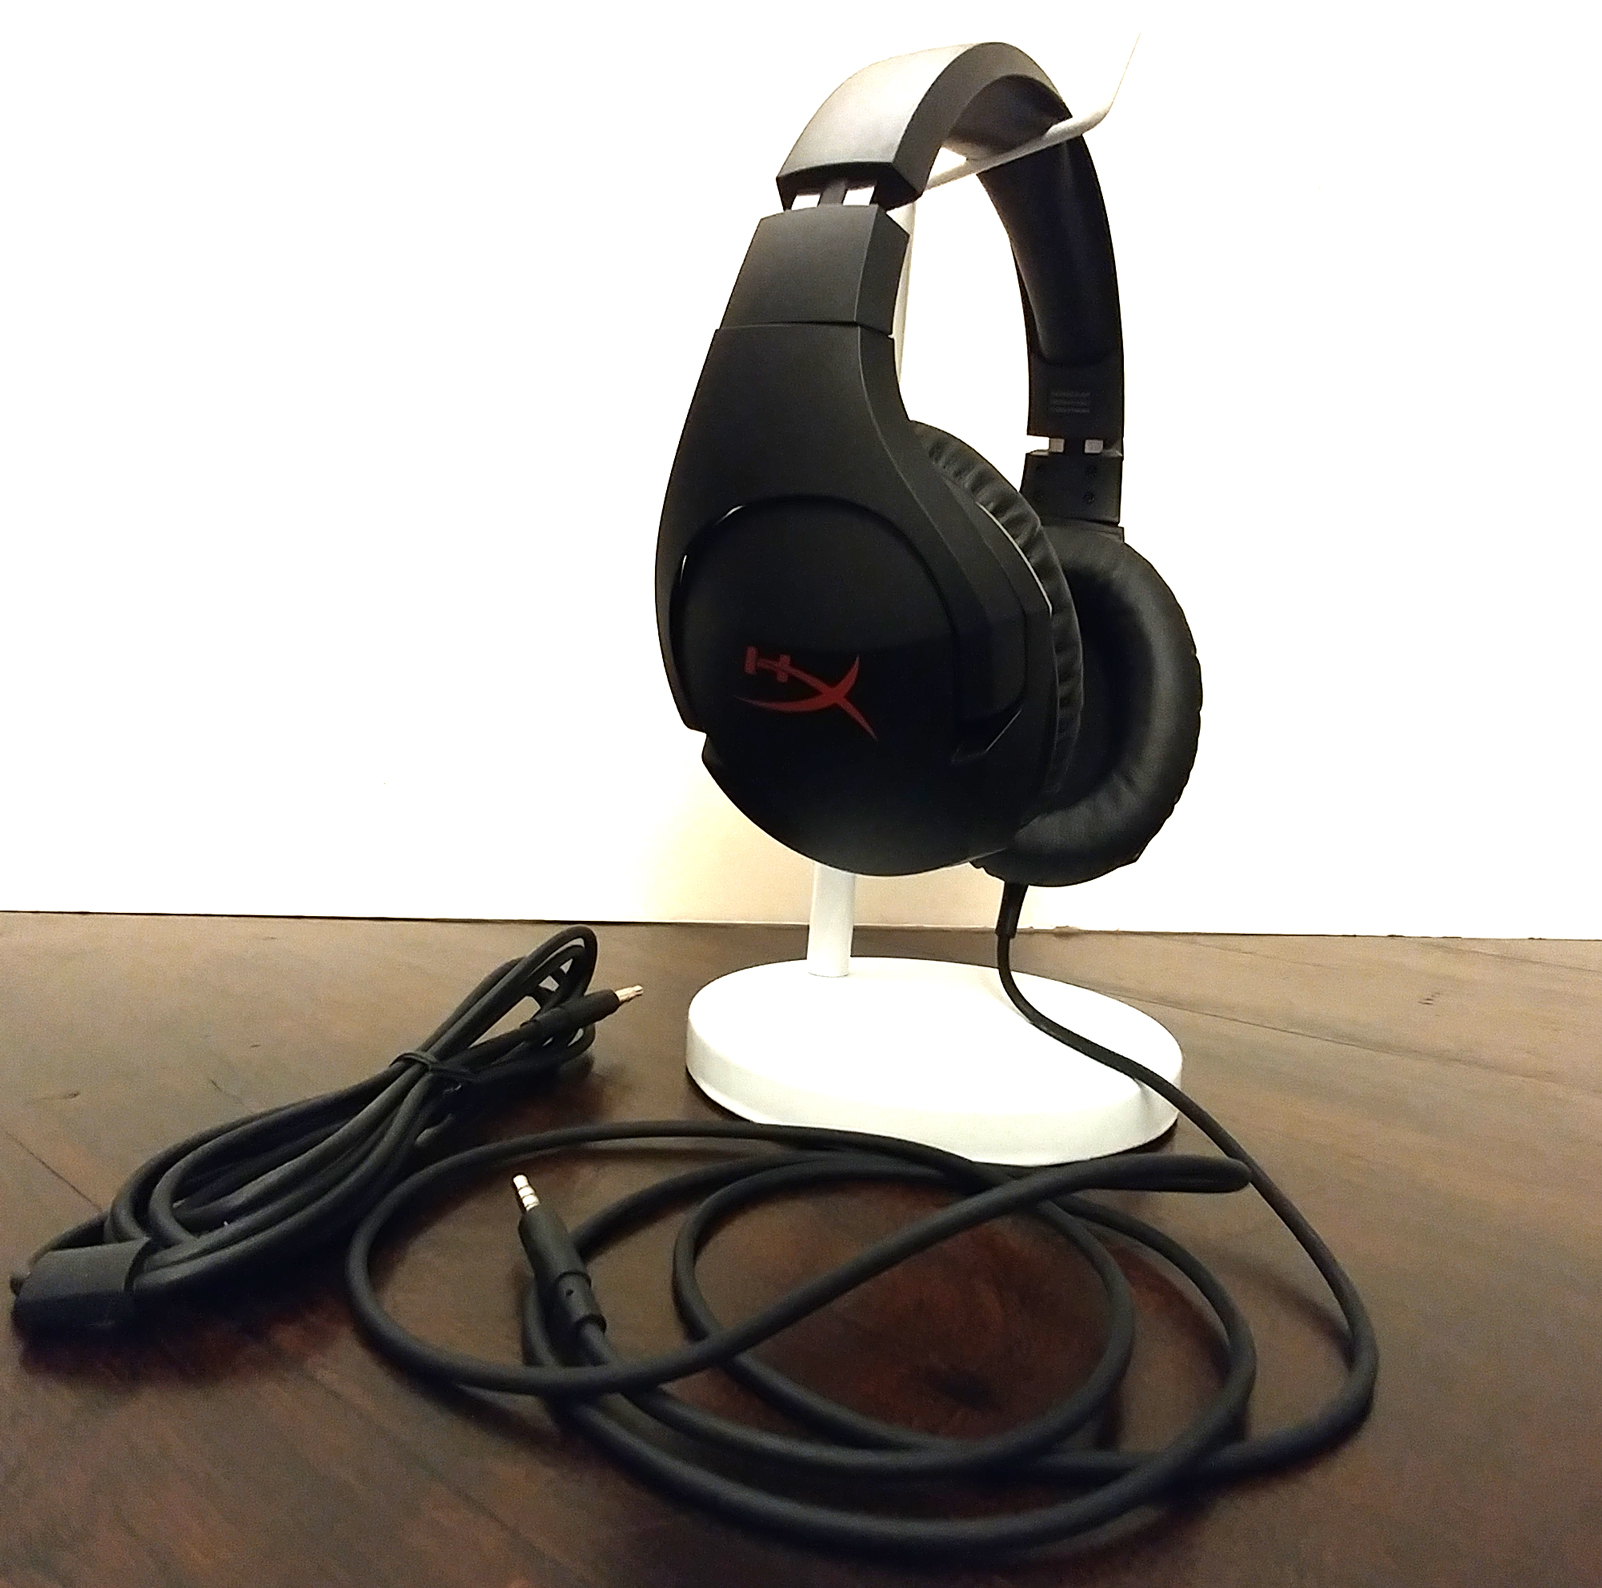 Brian Hoss High-Def Digest Review - HyperX Cloud Stinger Gaming Headset on stand with cables